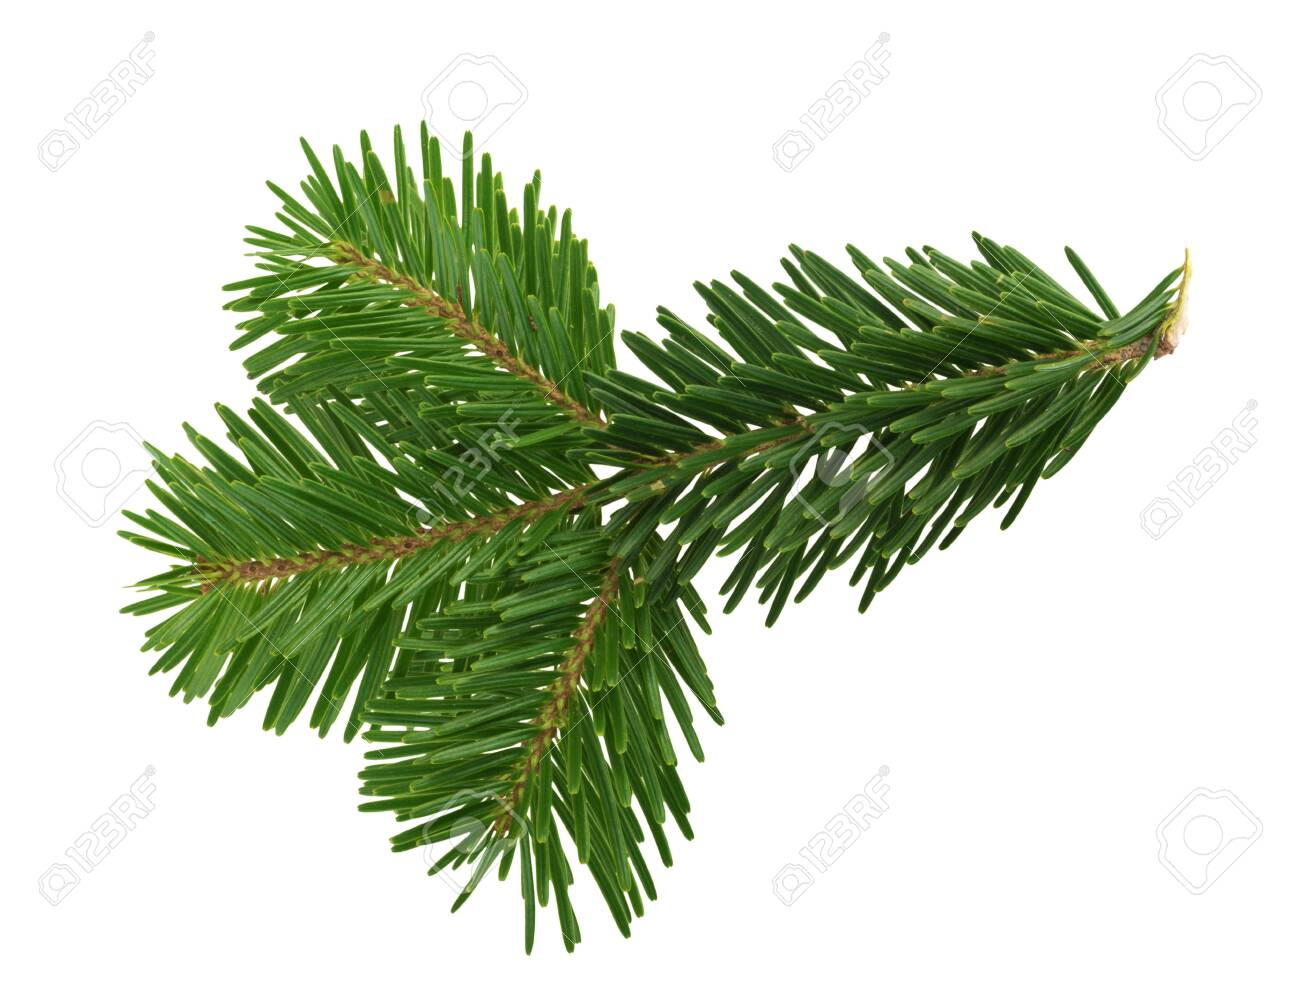 Fir tree isolated on white background - 136424311